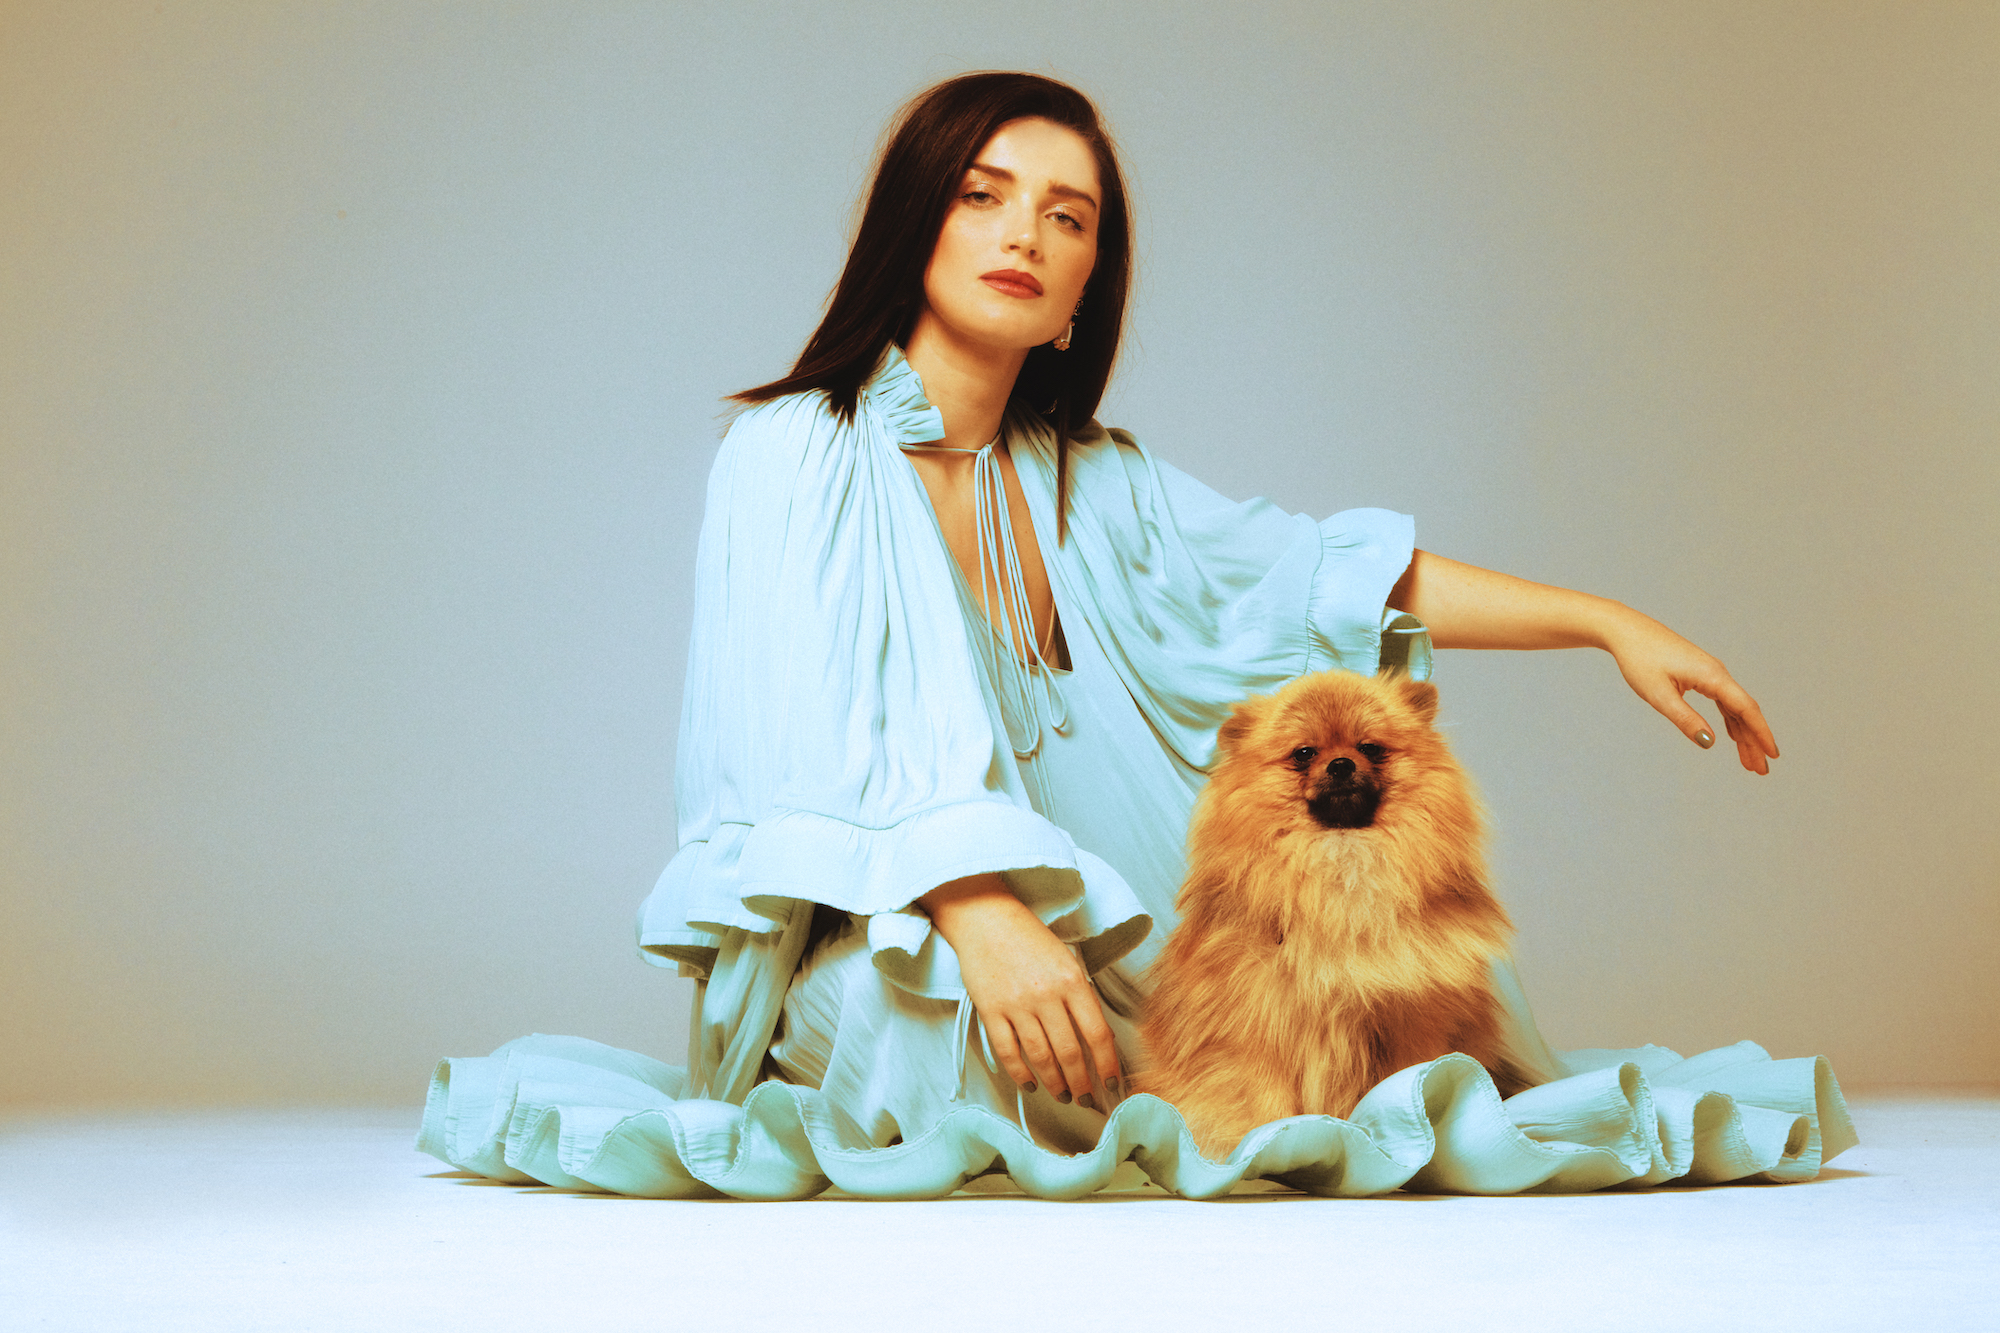 Eve Hewson wearing blue dress with dog